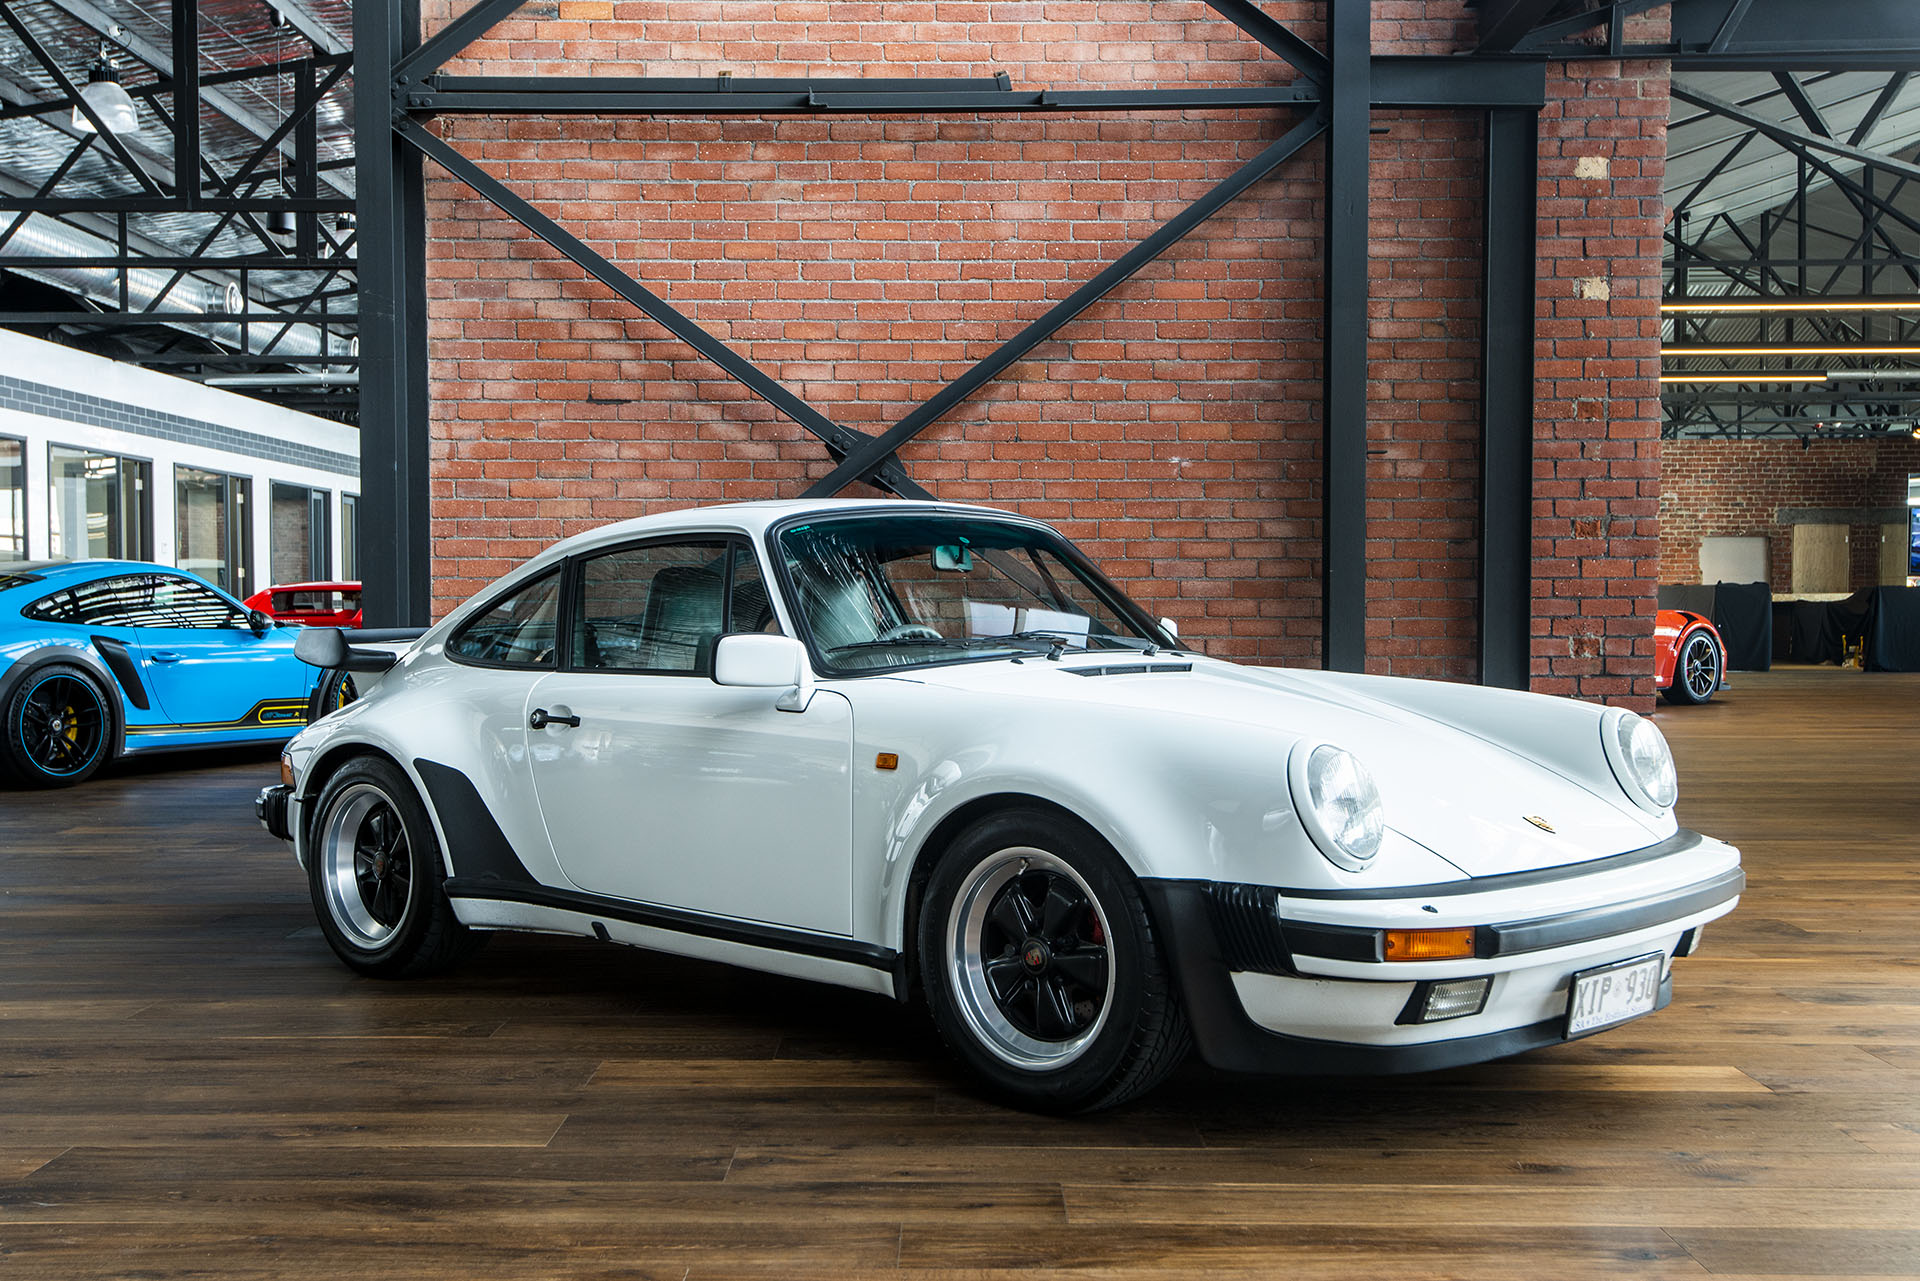 1985 Porsche 930 Turbo Richmonds Classic And Prestige Cars Storage And Sales Adelaide Australia